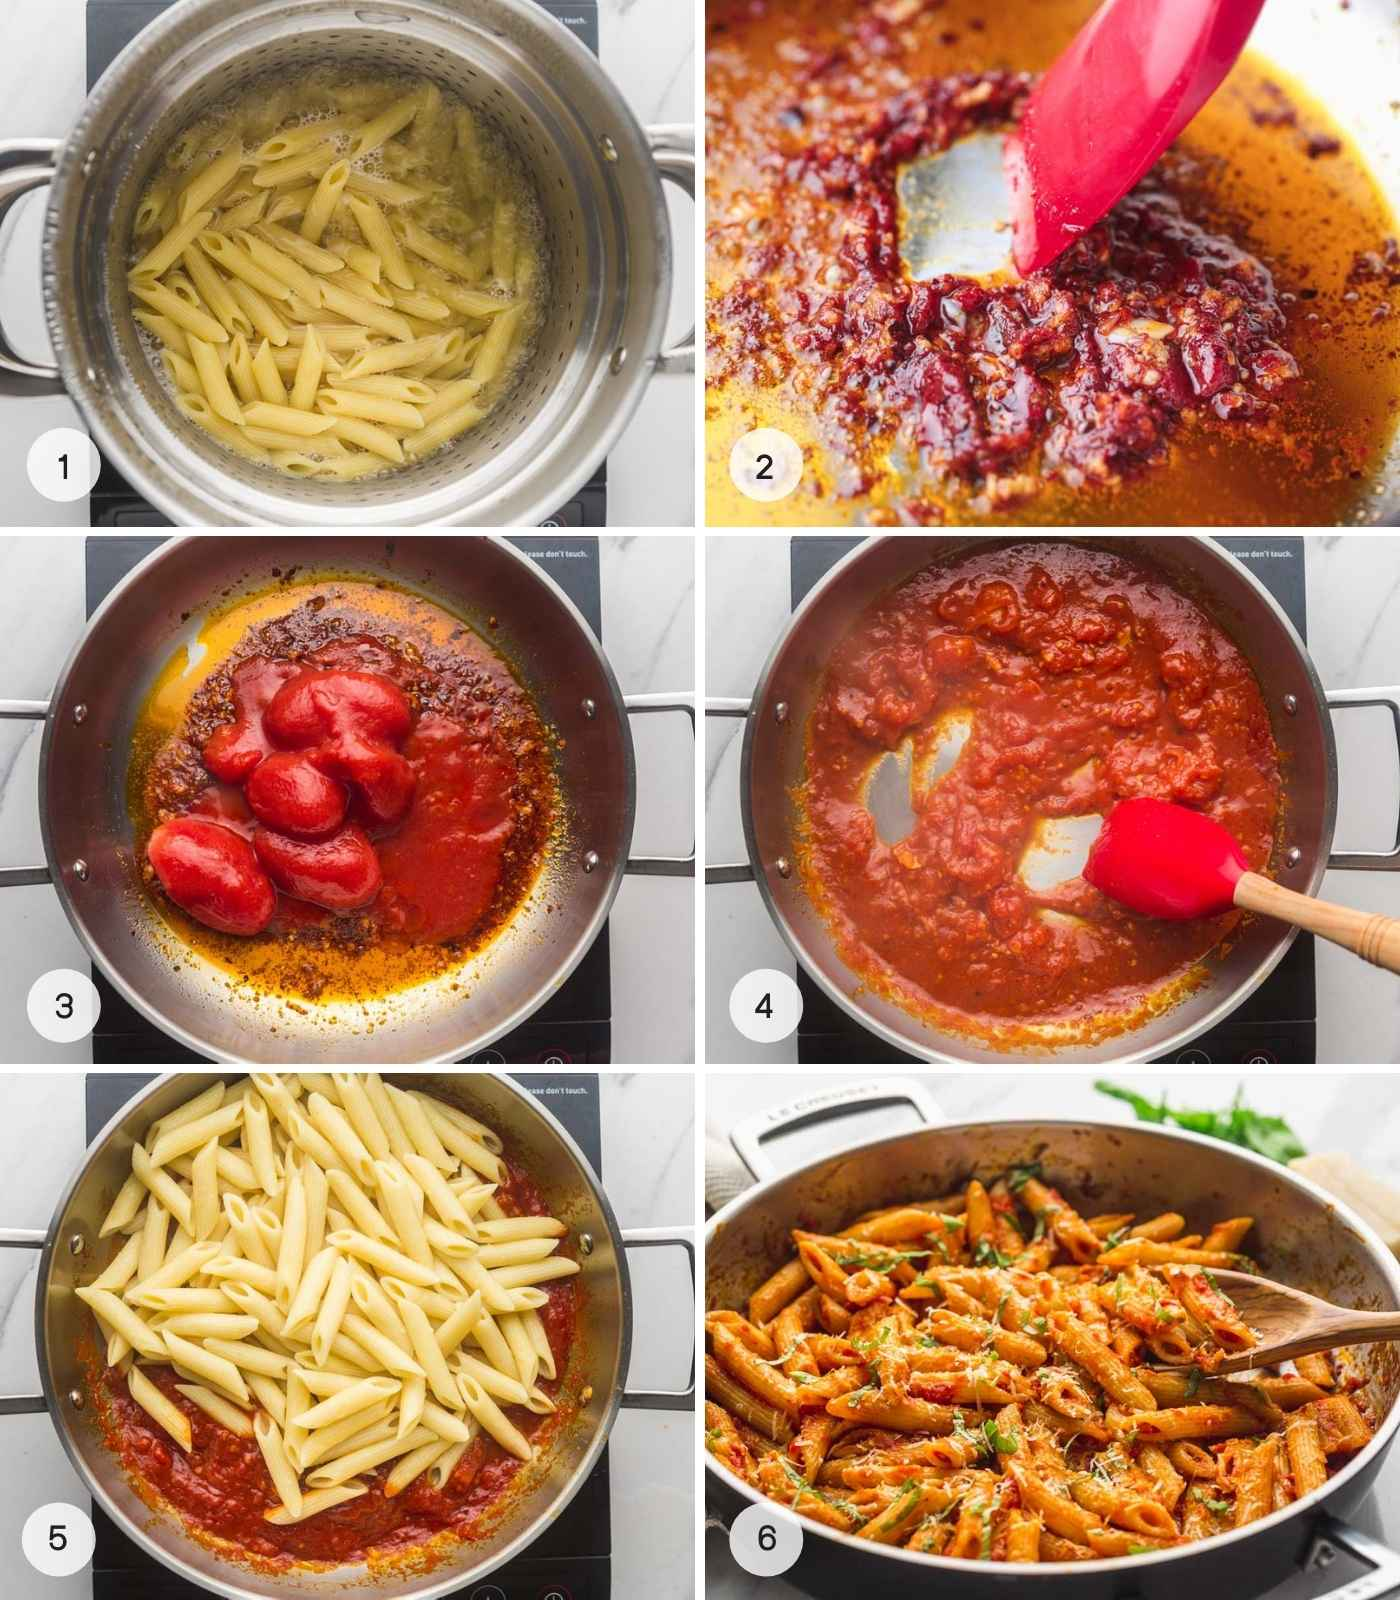 Steps on how to cook penne arrabbiata, a collage with 6 images